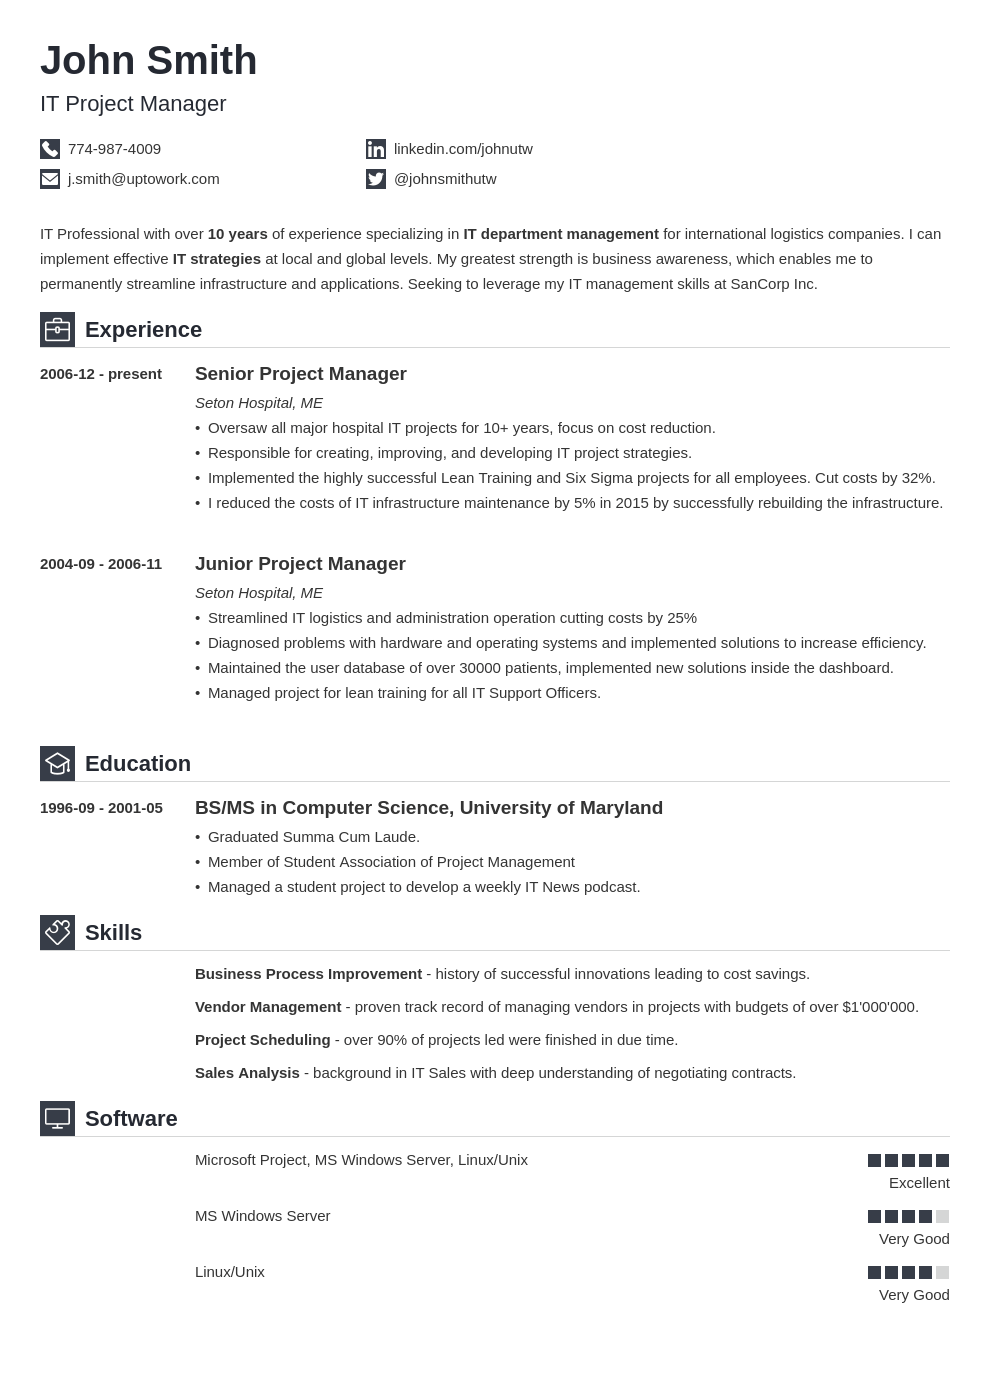 Cover Letter Template Uptowork